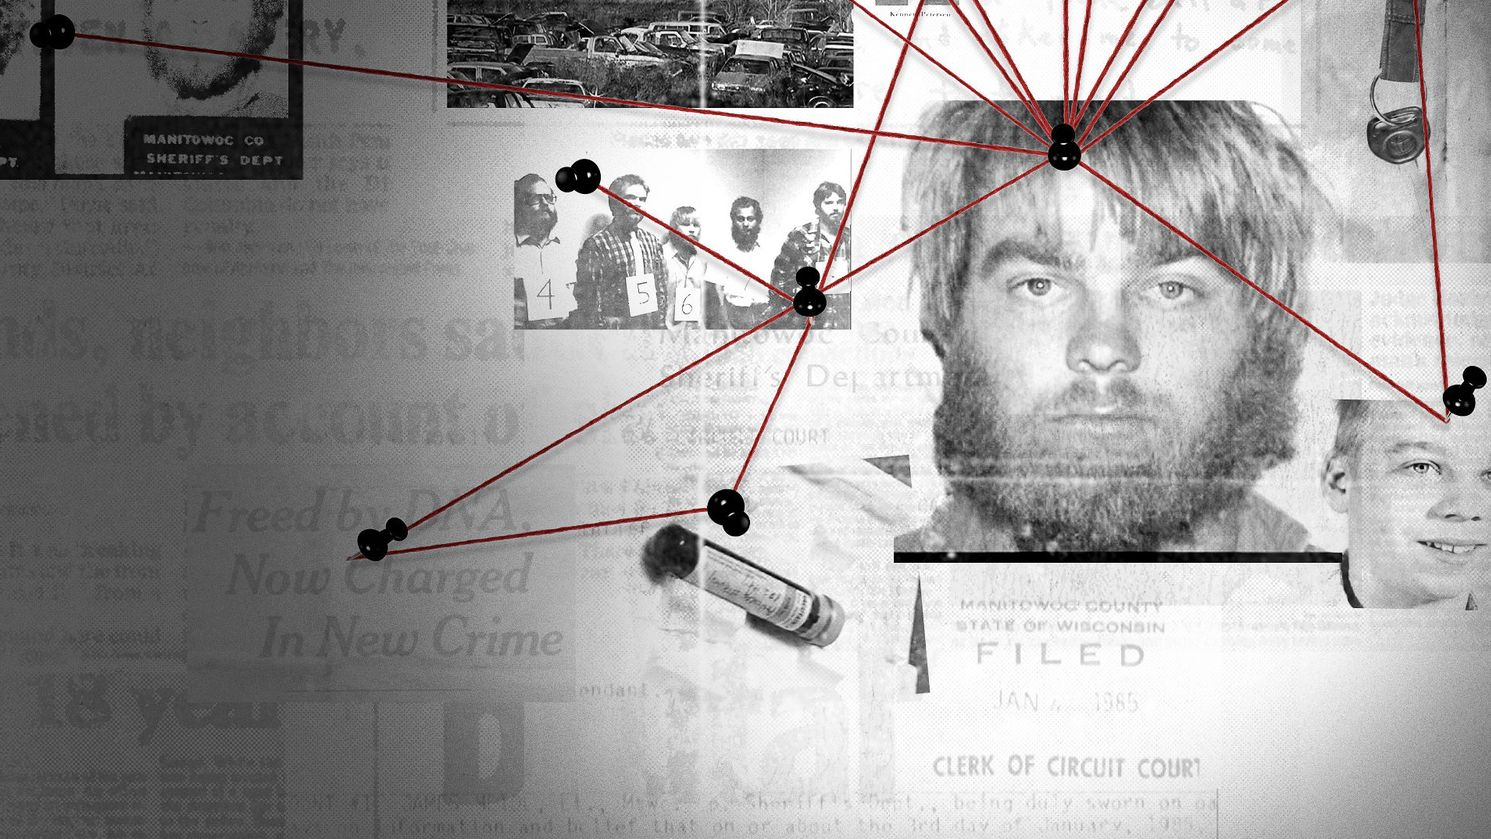 PART TWO: Netflix Announces New Episodes Of 'Making A Murderer', Almost 3 Years After Original